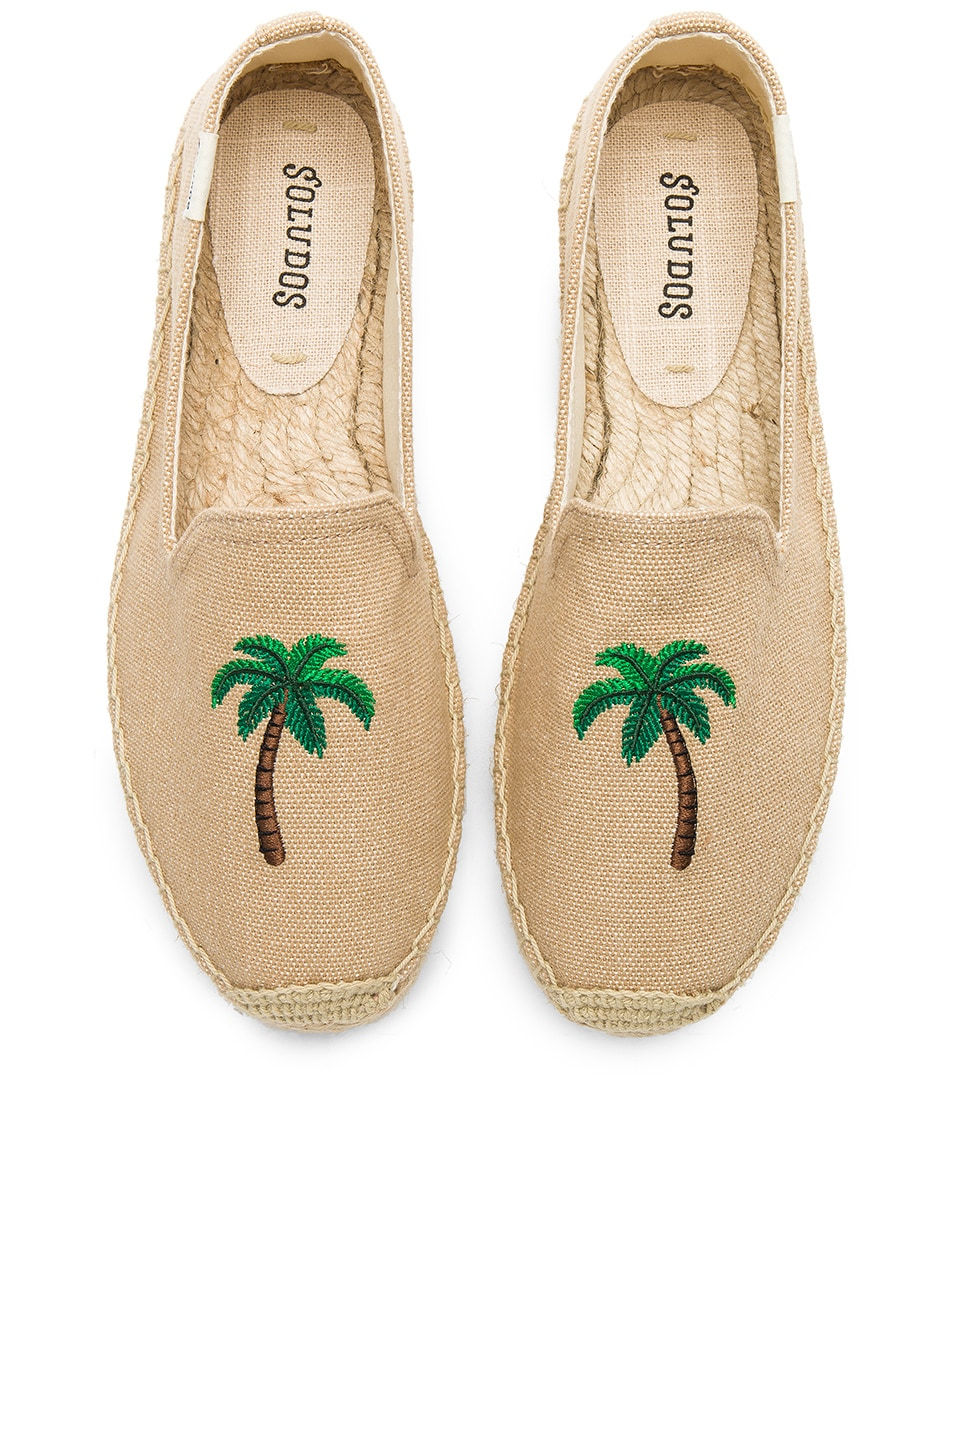 Soludos Palm Tree Smoking Slipper in Safari